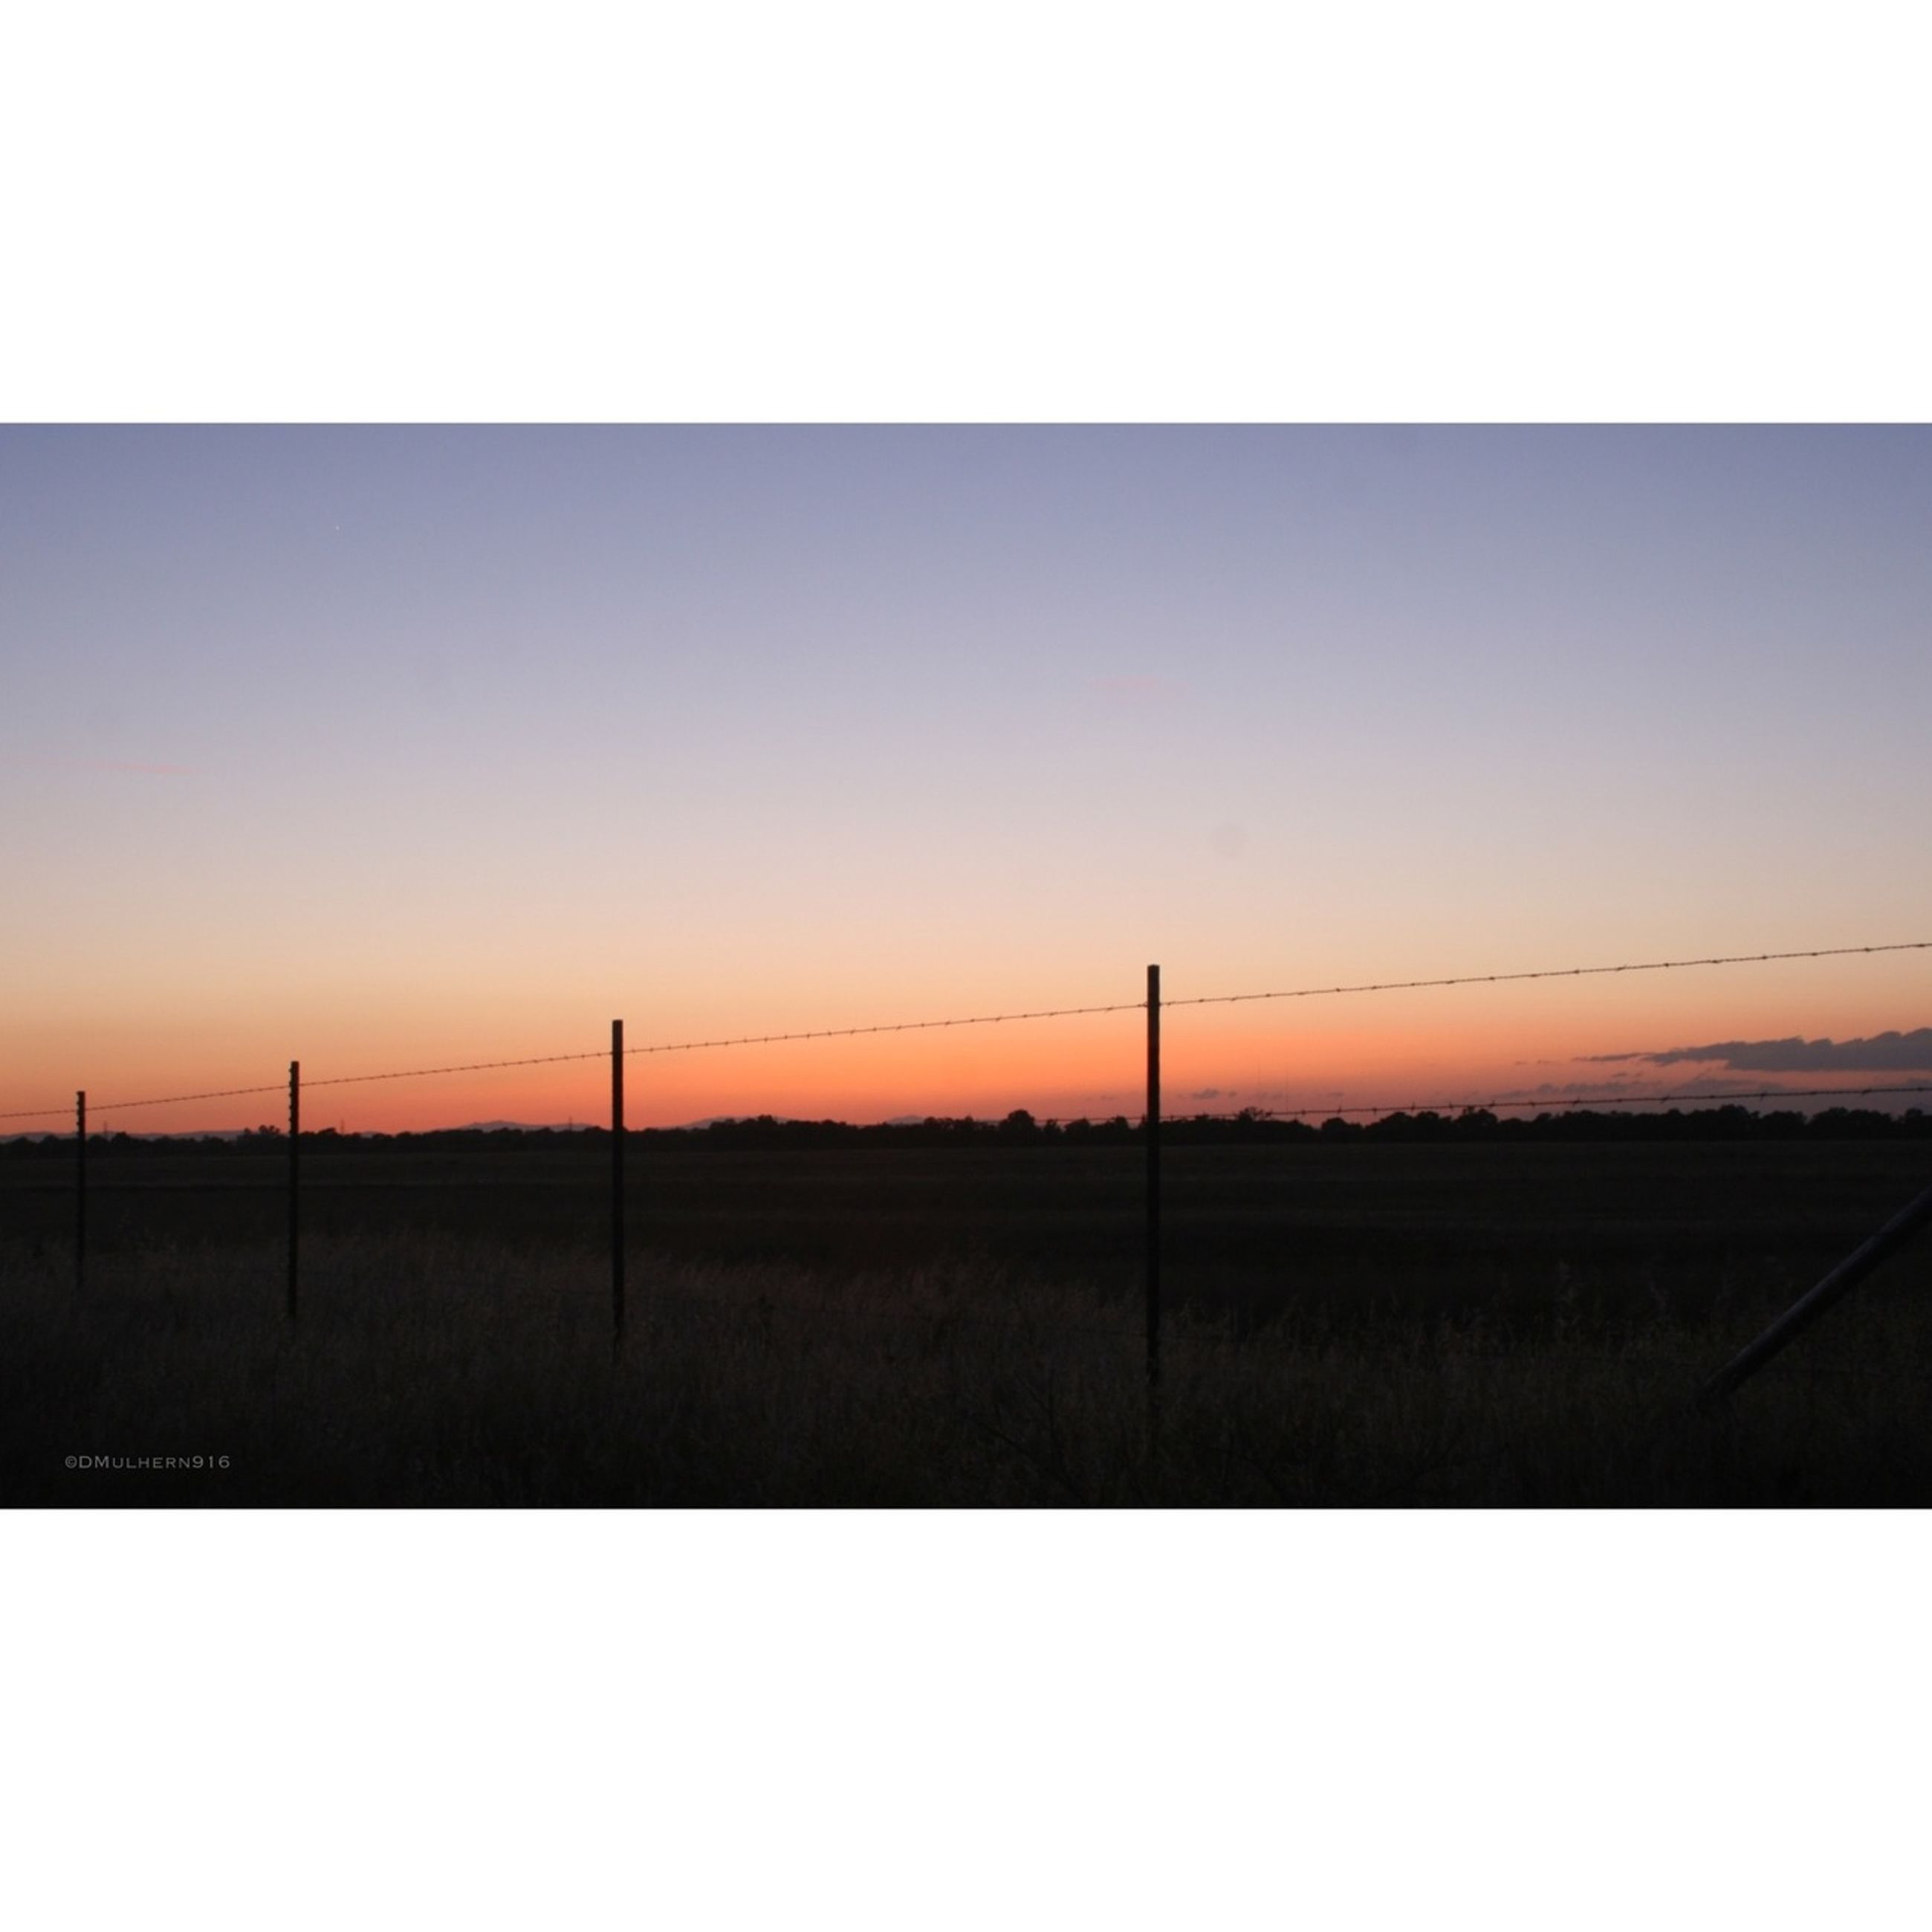 sunset, landscape, field, copy space, tranquil scene, silhouette, tranquility, scenics, clear sky, orange color, transfer print, sky, beauty in nature, horizon over land, nature, electricity pylon, rural scene, auto post production filter, outdoors, grass